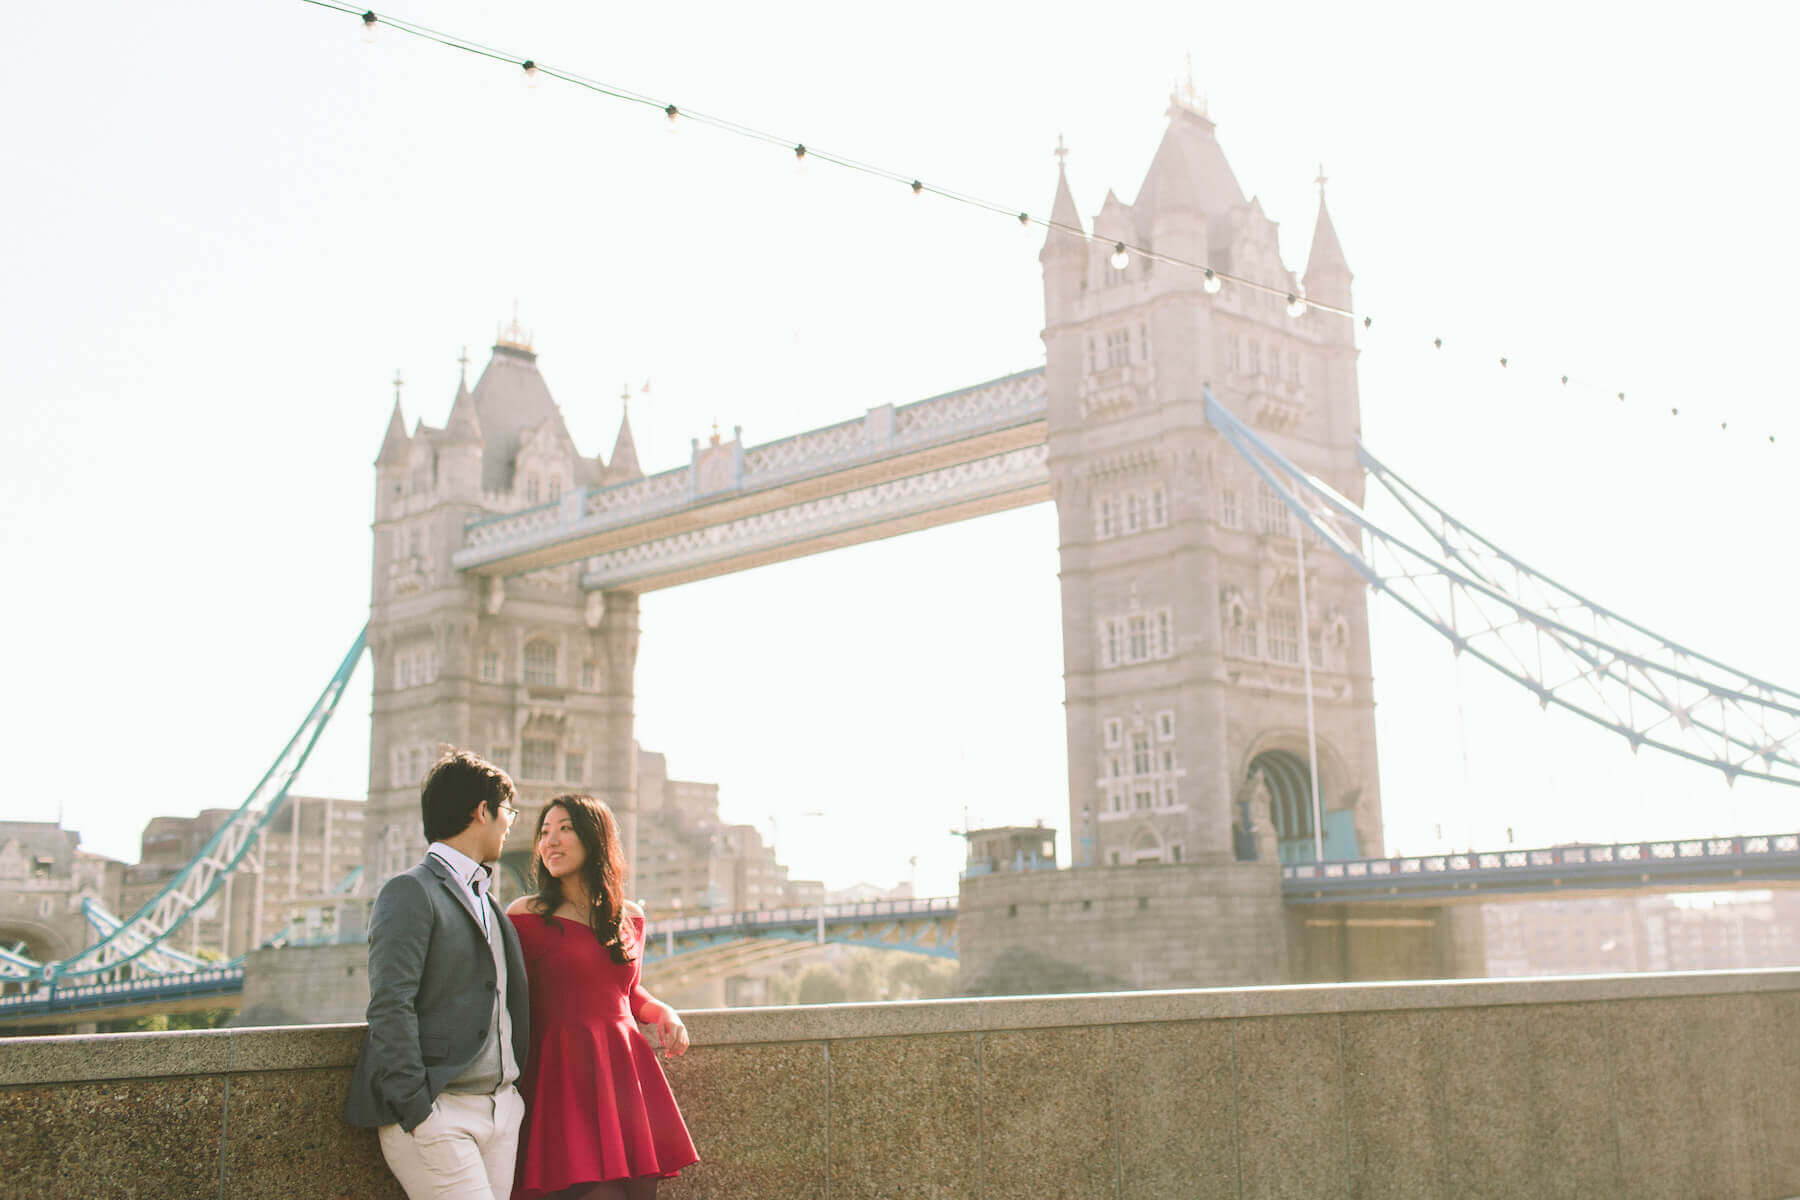 Couple looking lovingly at each other with the Tower Bridge in the background in London, UK